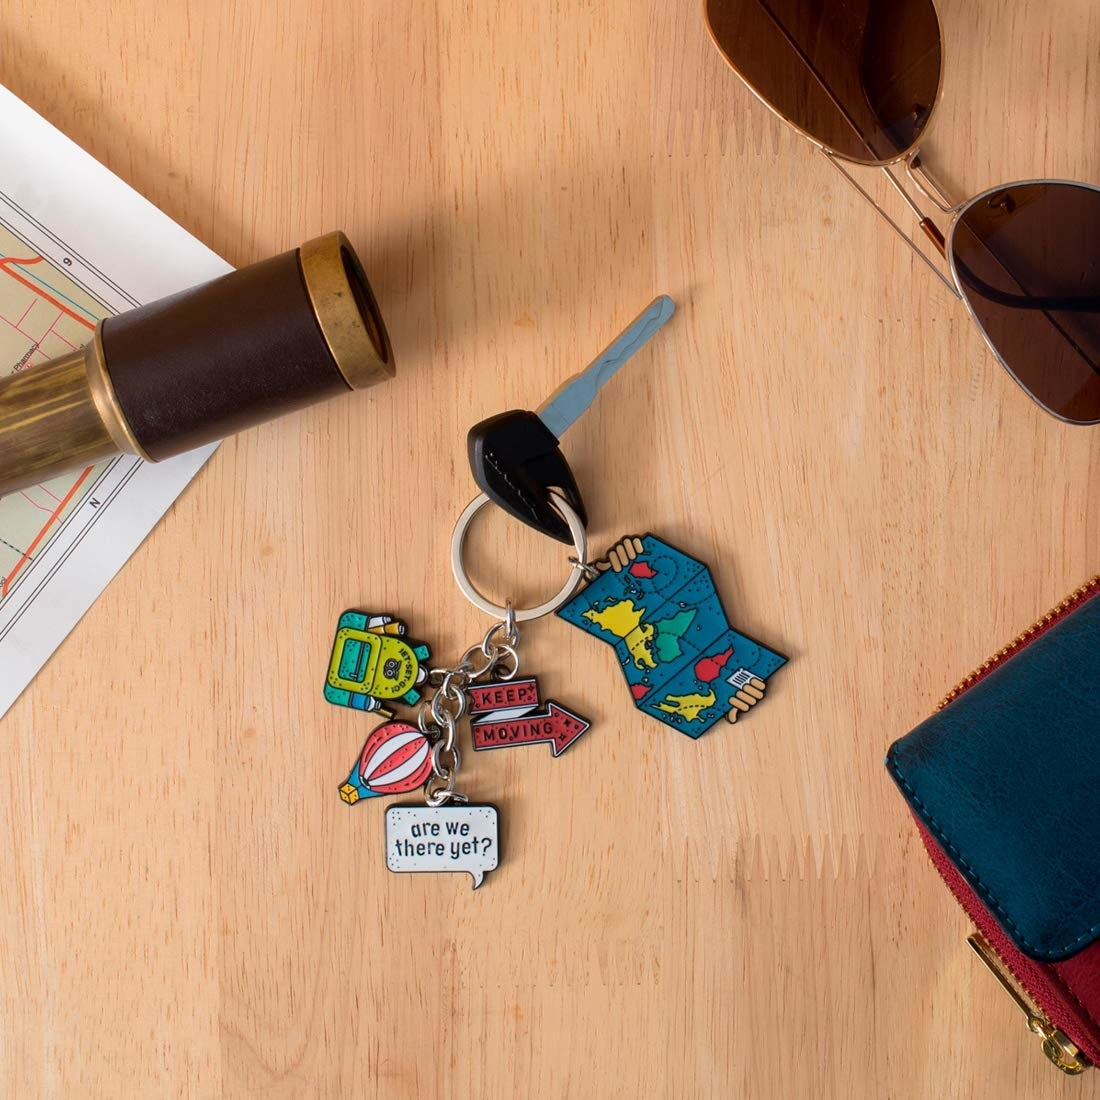 A key chain with backpack, hot air balloon, map, Keep Moving, Are We There Yet charms.